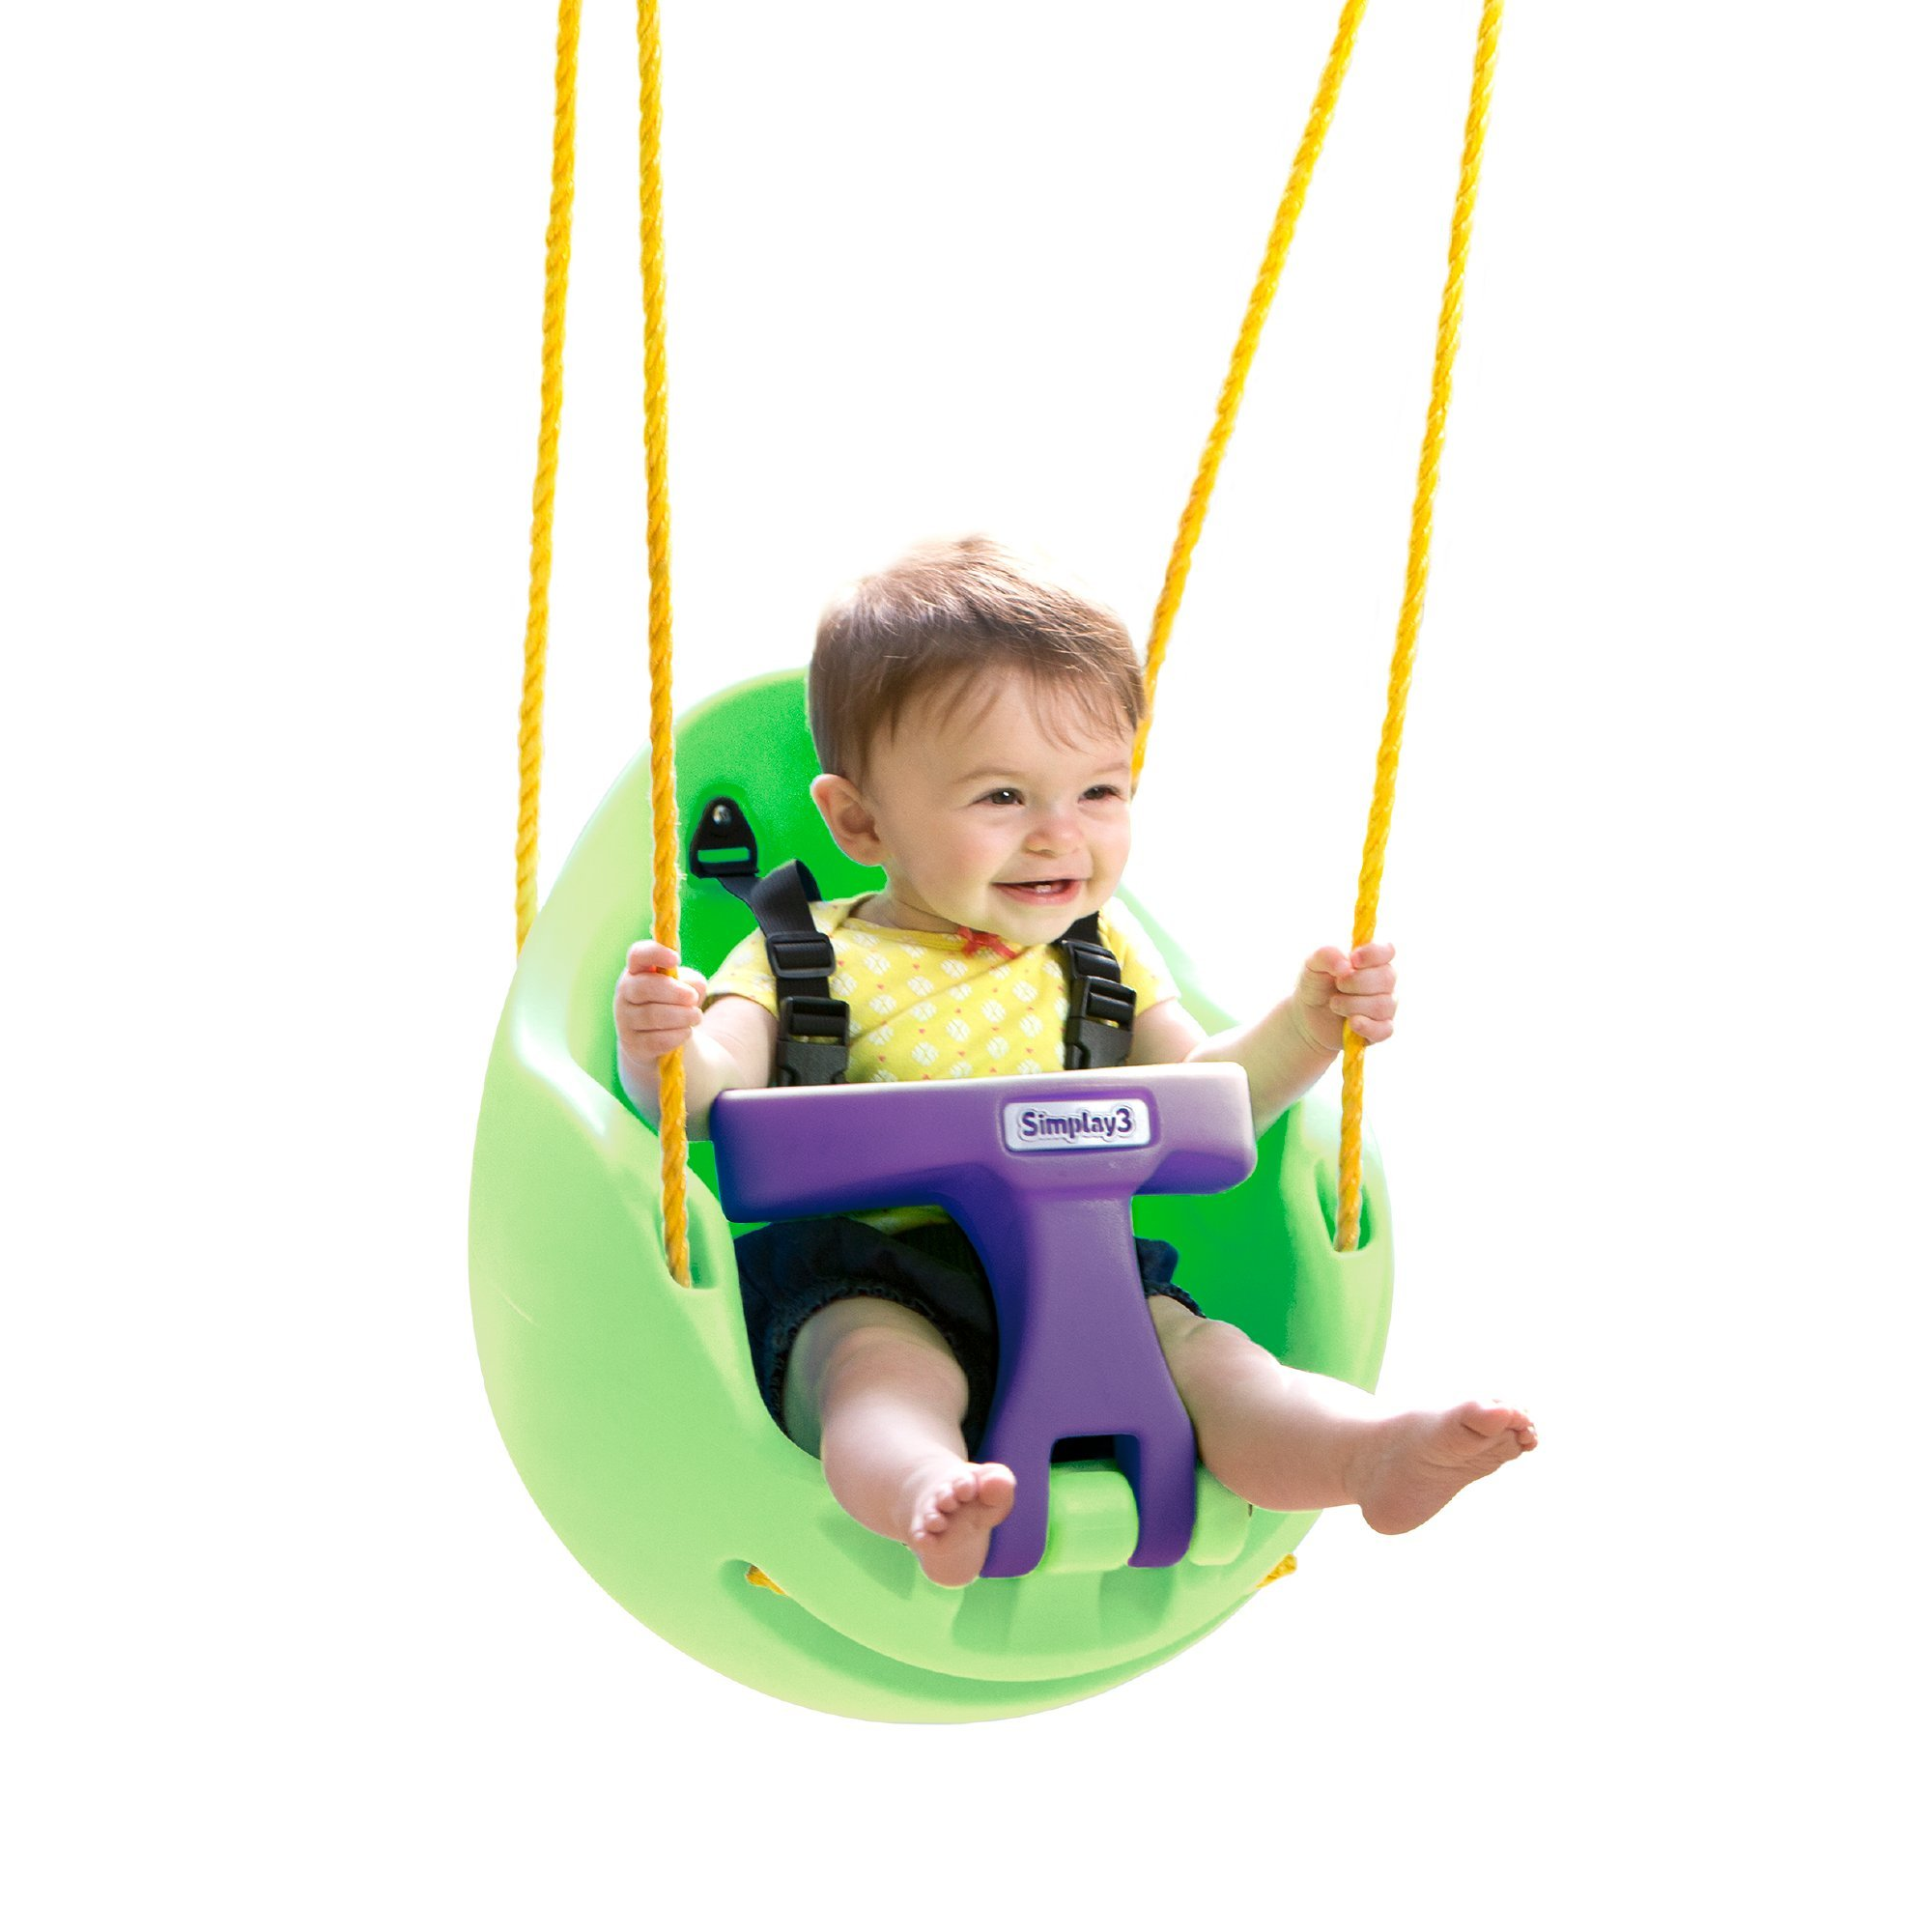 Simplay3 Snuggle Swing - Children's First Swing, Green and Purple